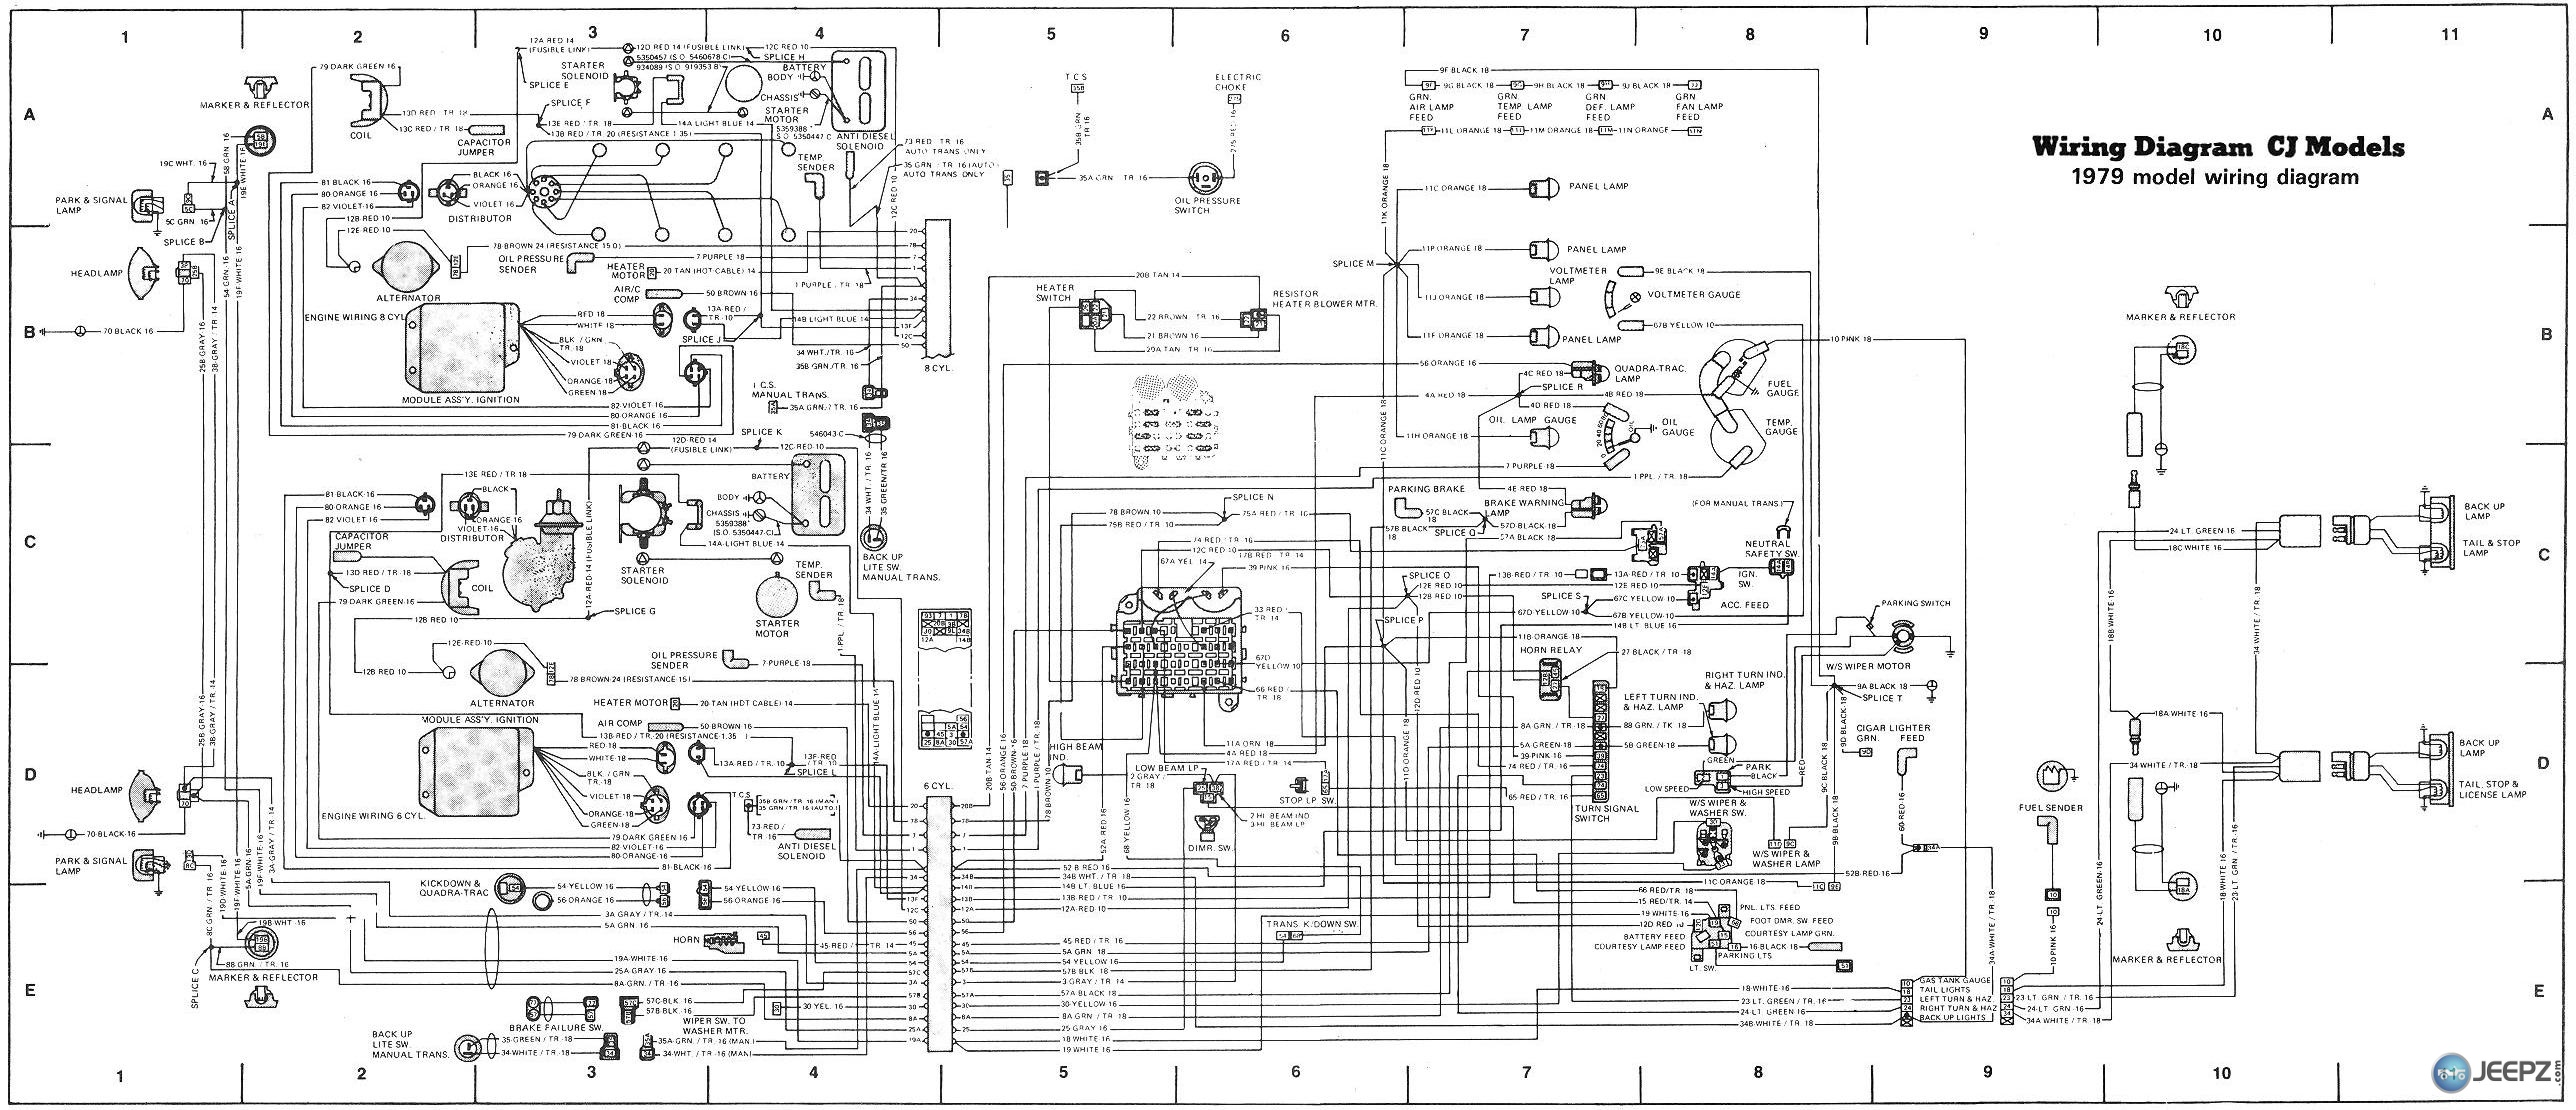 Jeep Cj5 Ignition Wiring Free Vehicle Wiring Diagrams \u2022 1977 CJ5 Wiring -Diagram 75 Jeep Cj5 Ignition Switch Wiring Diagram